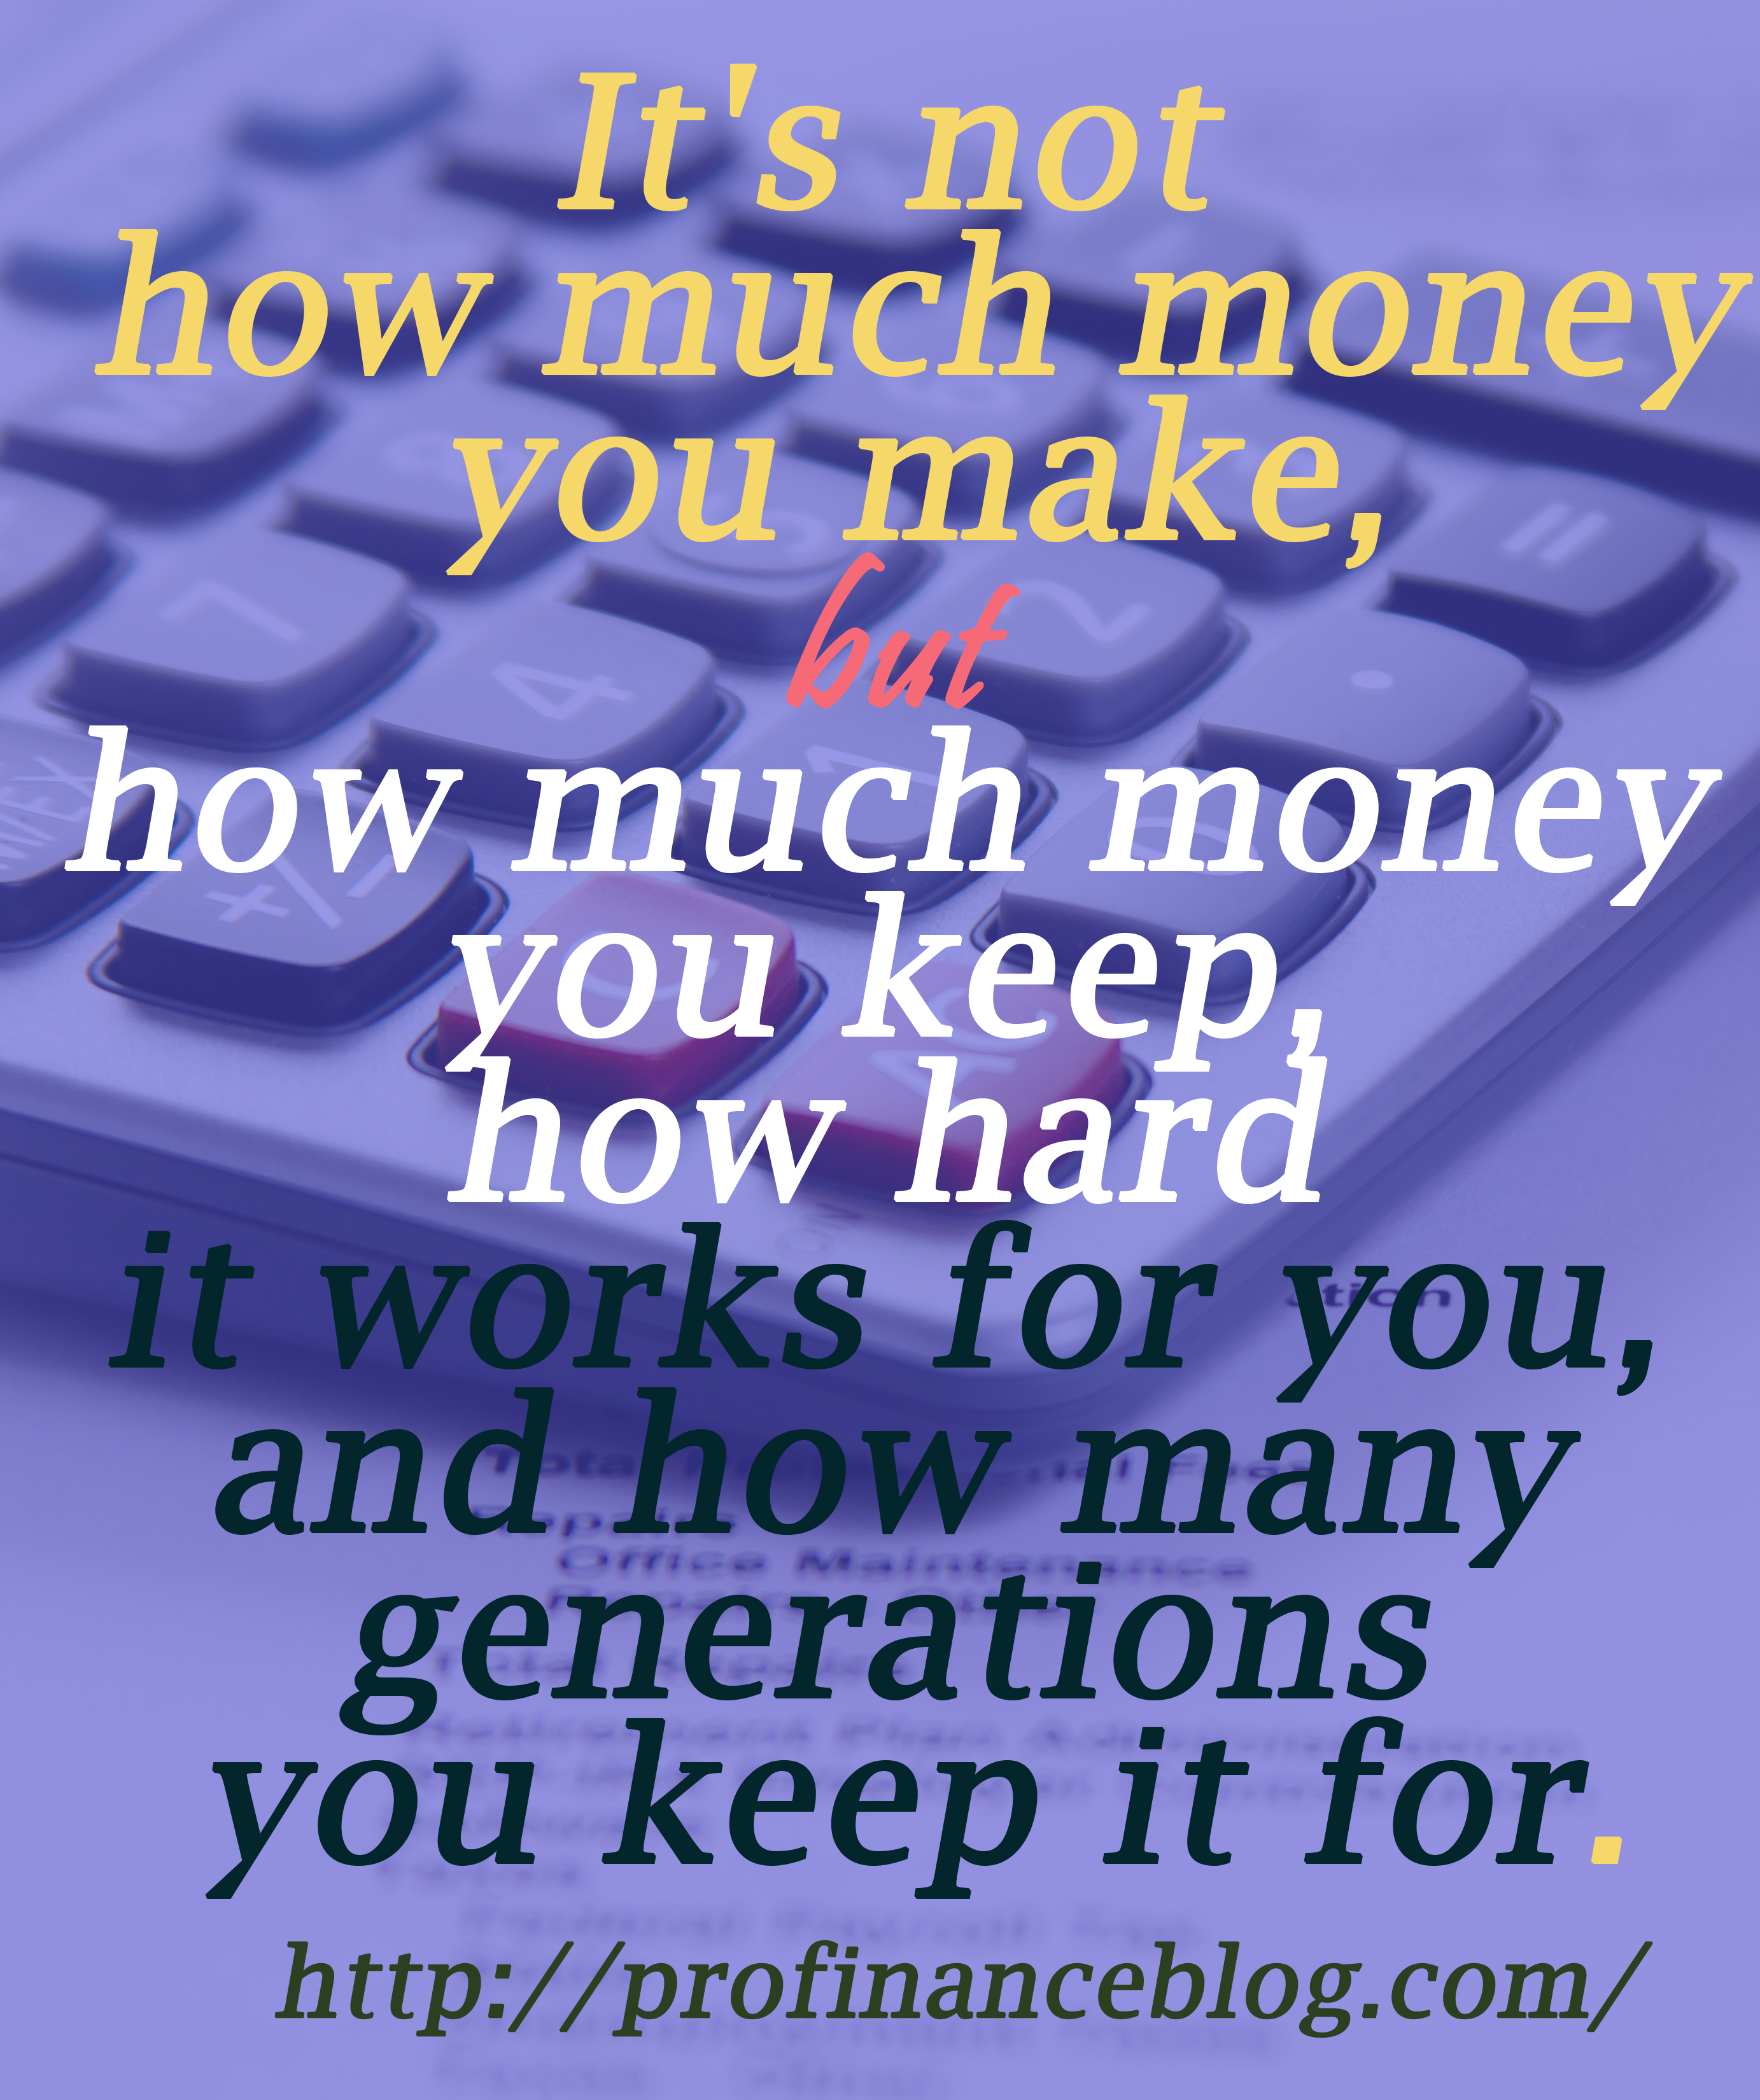 I love money. I love everything about it. I bought some pretty good stuff. Got me a $300 pair of socks. Got a fur sink. An electric dog polisher. A gasoline powered turtleneck sweater. And, of course, I bought some dumb stuff, too. ~ Steve Martin  http://profinanceblog.com